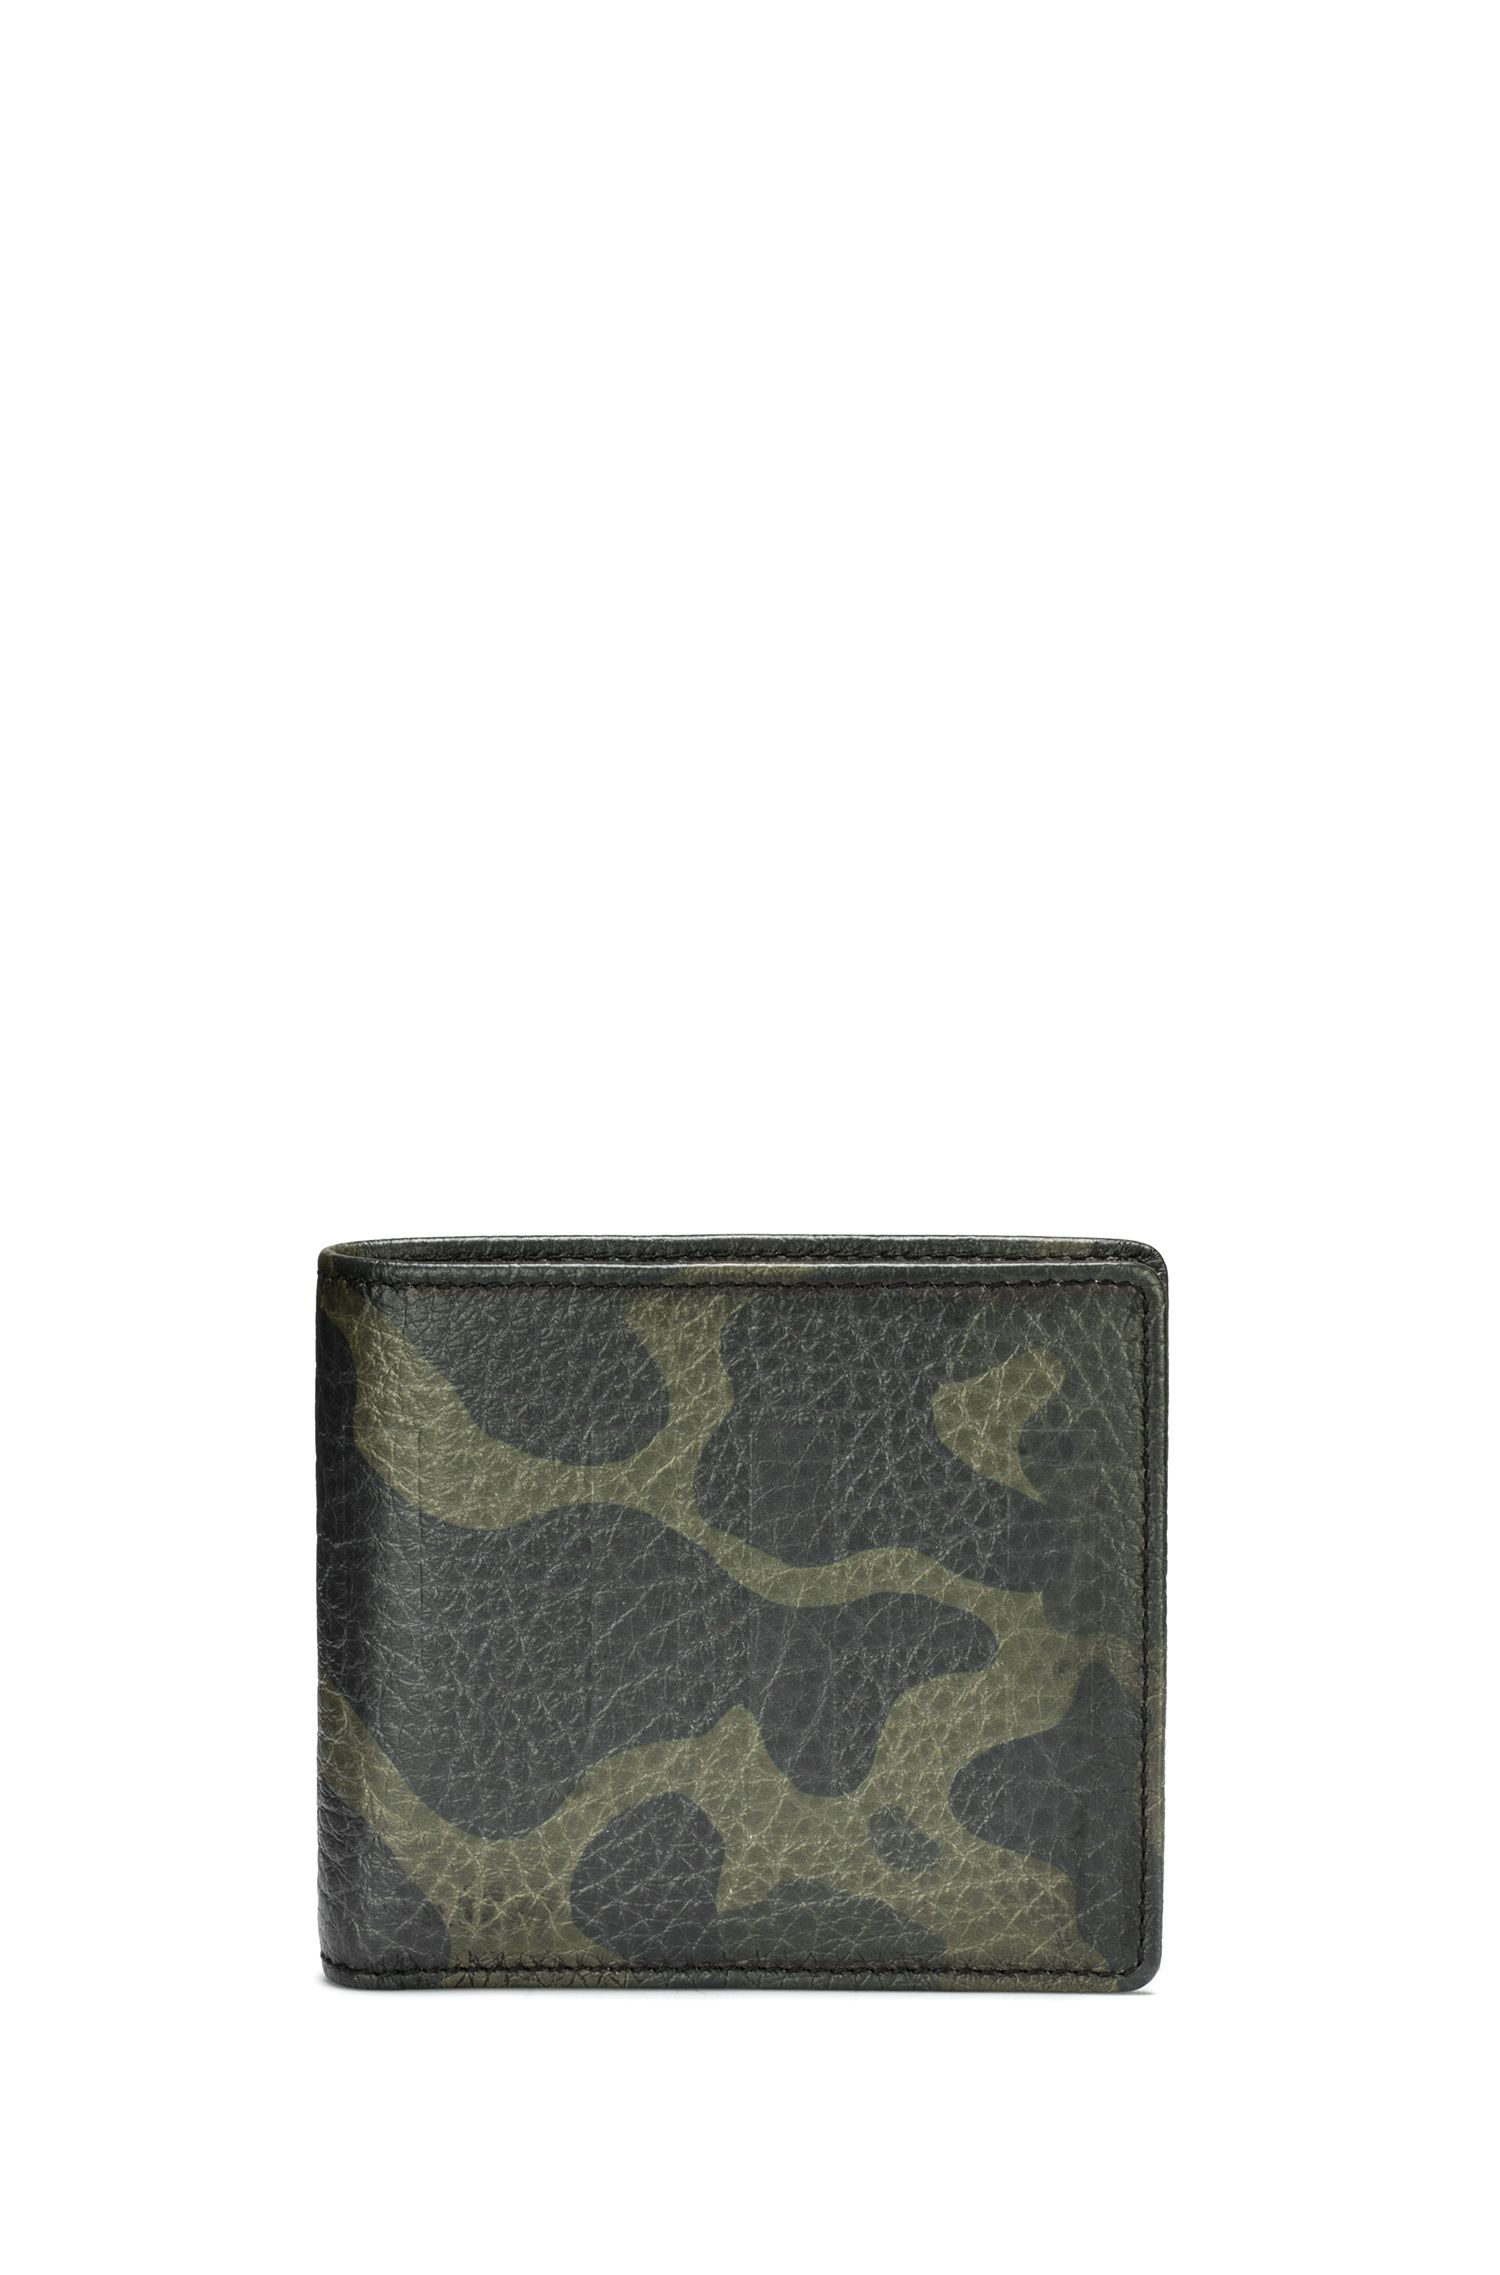 Camouflage-print leather wallet with coin pouch, Patterned